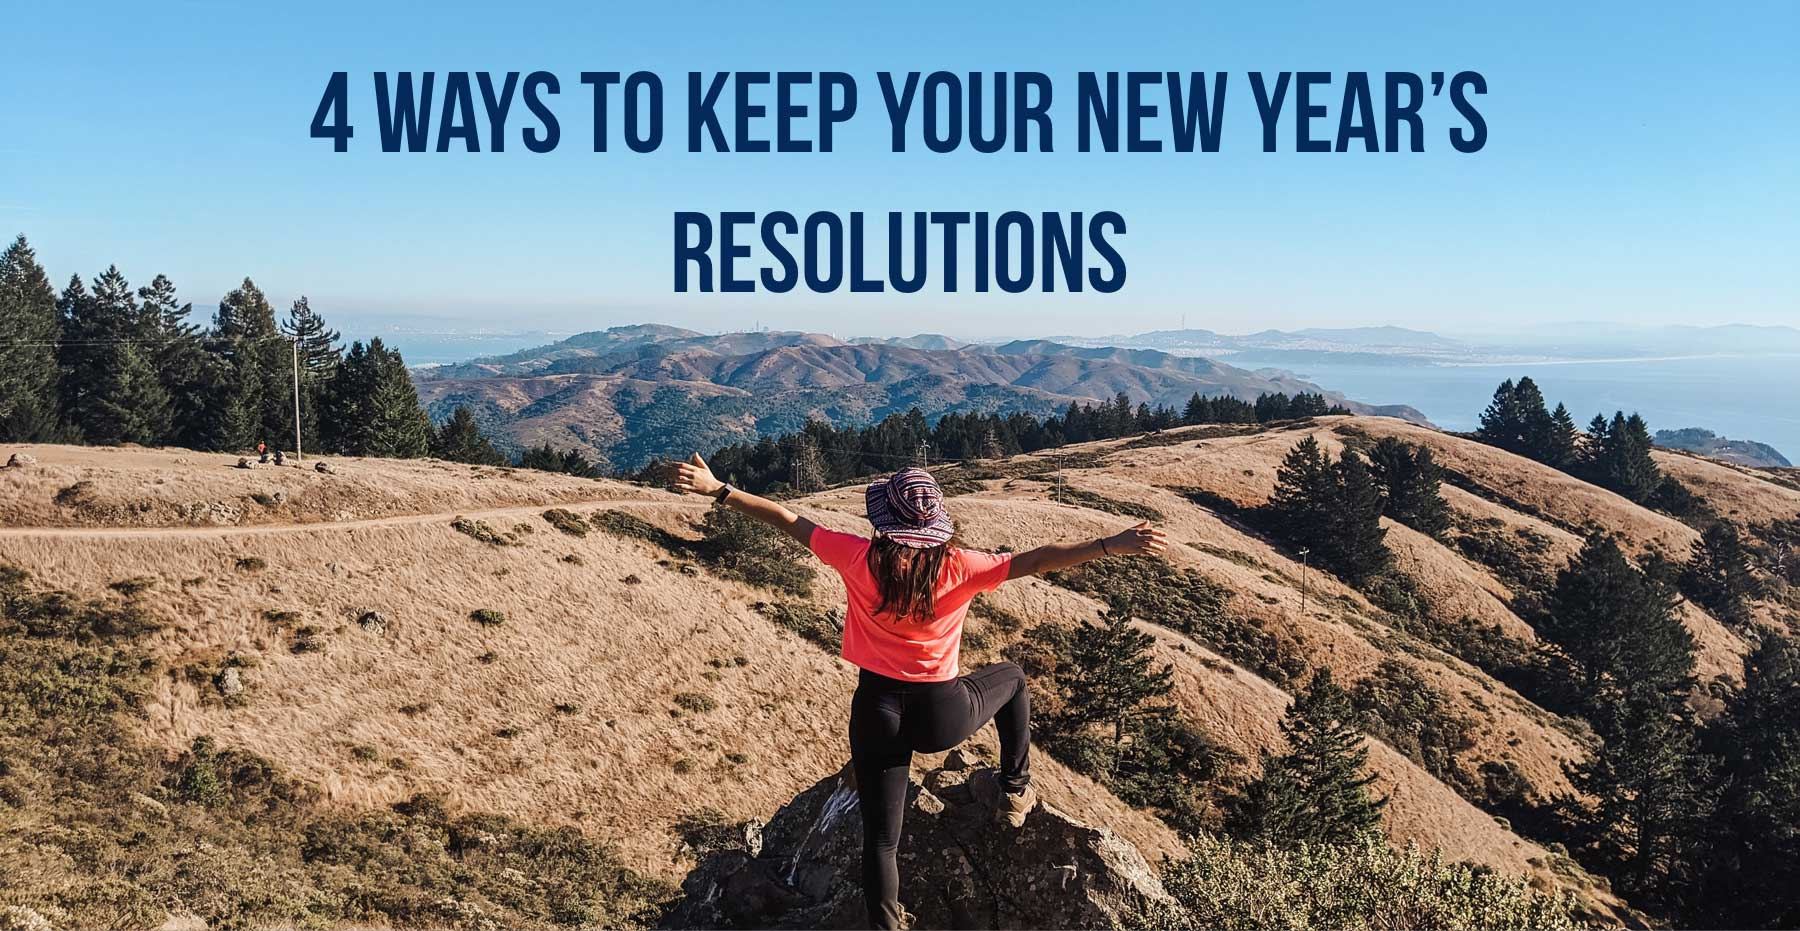 4-Ways-to-Actually-Keep-Your-New-Year's-Resolutions-thehopeline